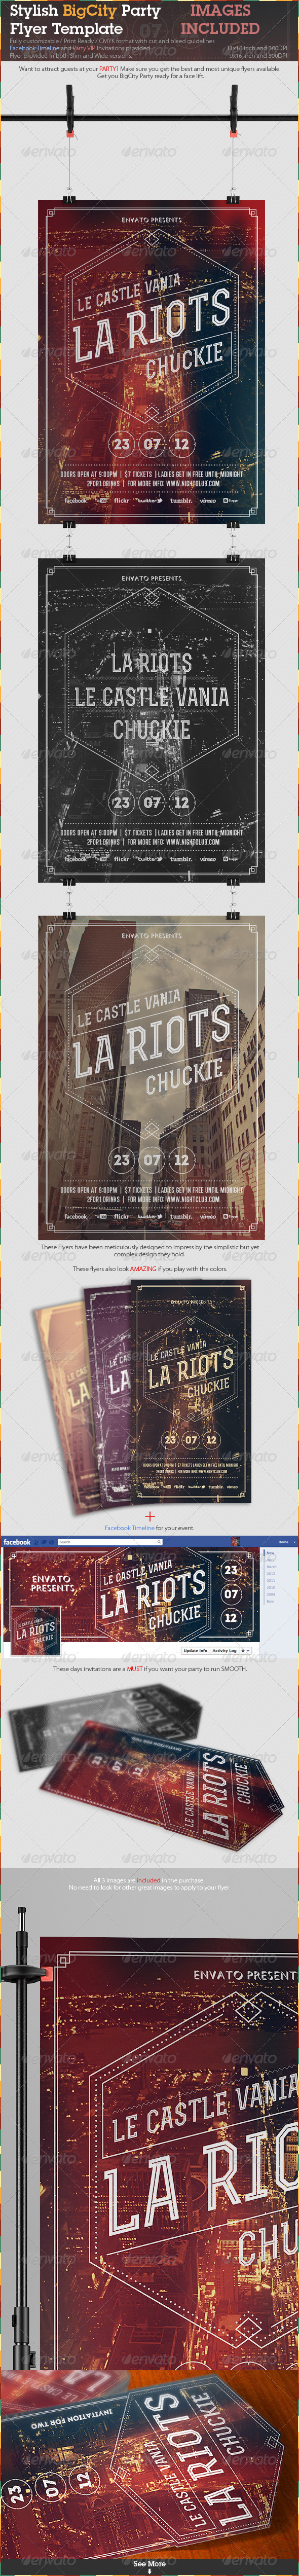 Stylish BigCity Party Flyer Template - Clubs & Parties Events